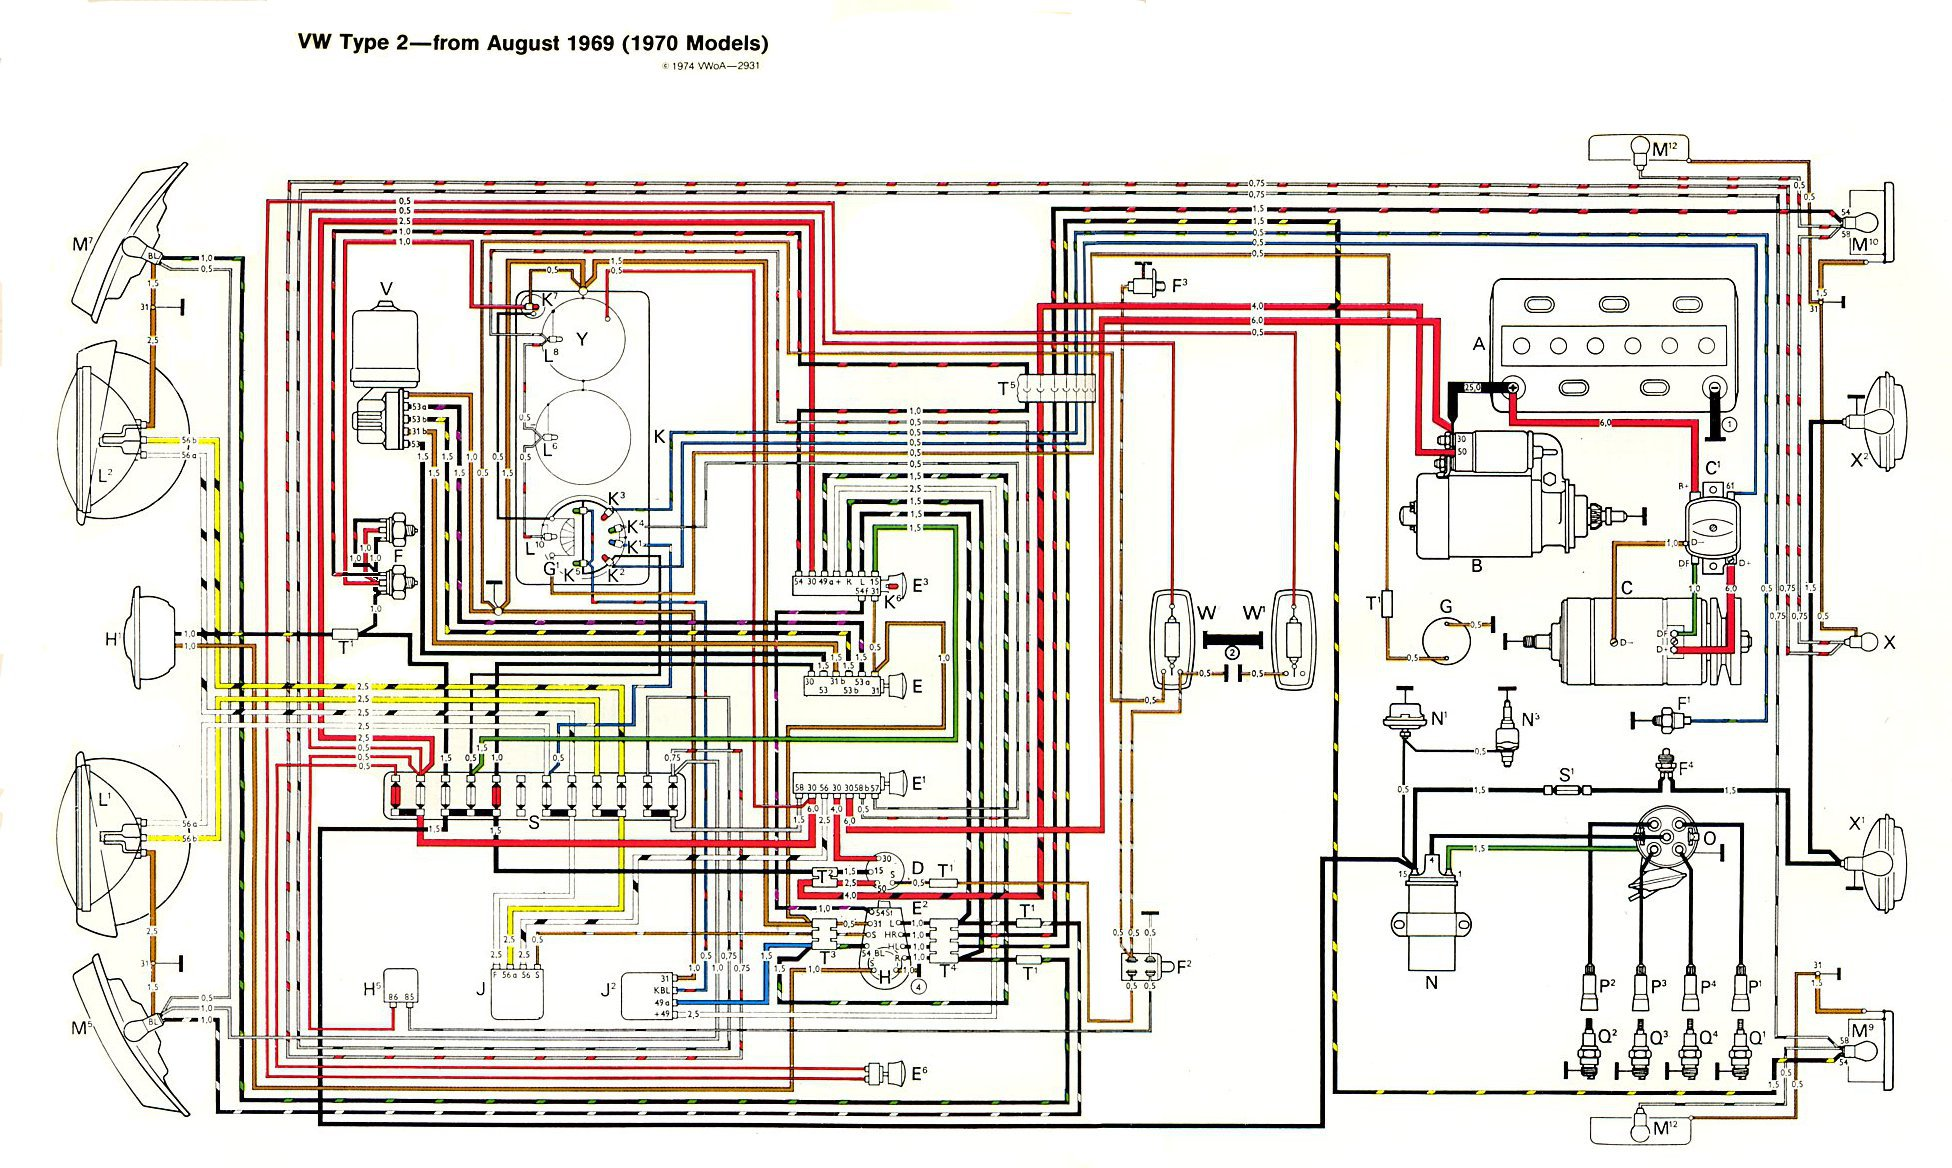 baybus_70 thesamba com type 2 wiring diagrams 1968 vw bug wiring diagram at bayanpartner.co